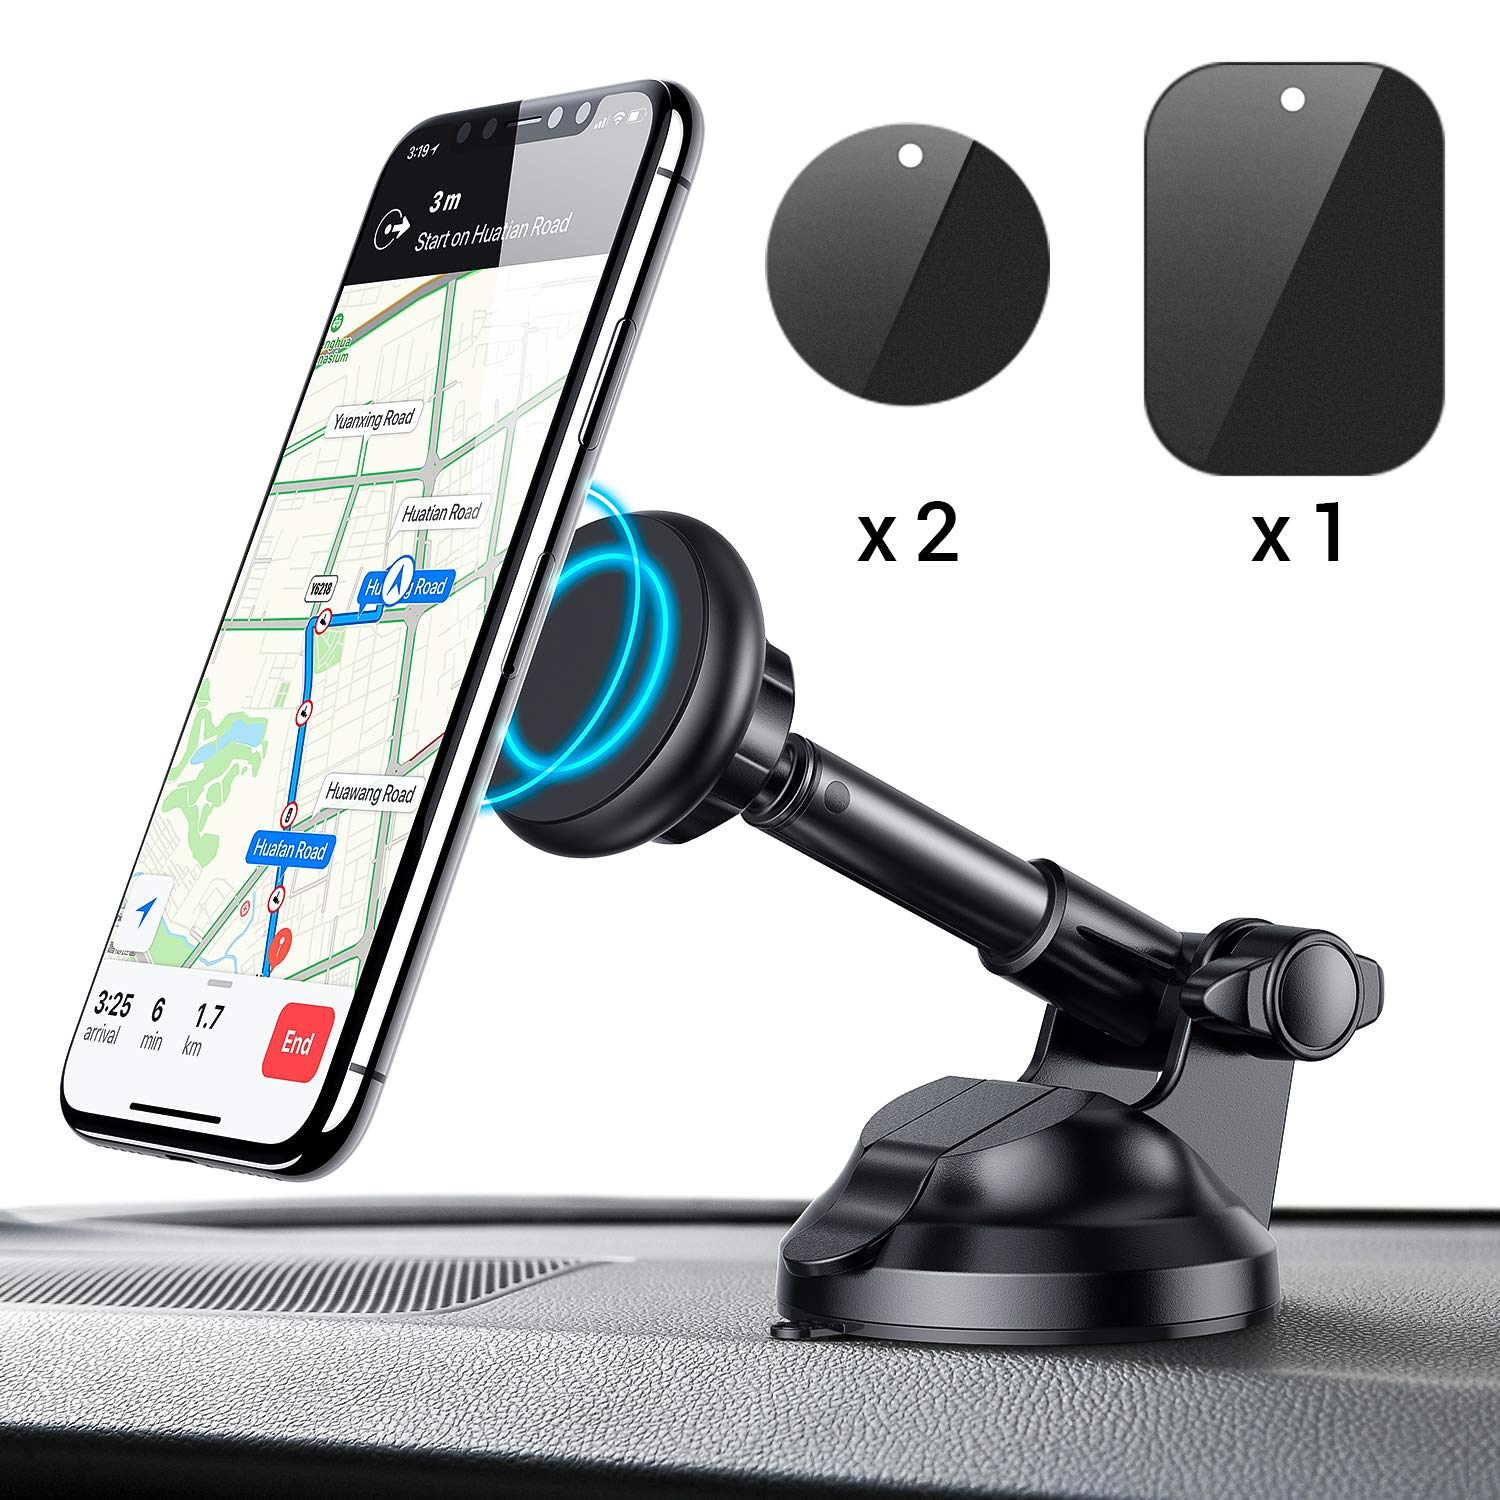 Magnetic Cell Phone Mount >> Details About Car Phone Mount Magnetic Phone Car Mount With 6 Strong Magnets Cell Phone